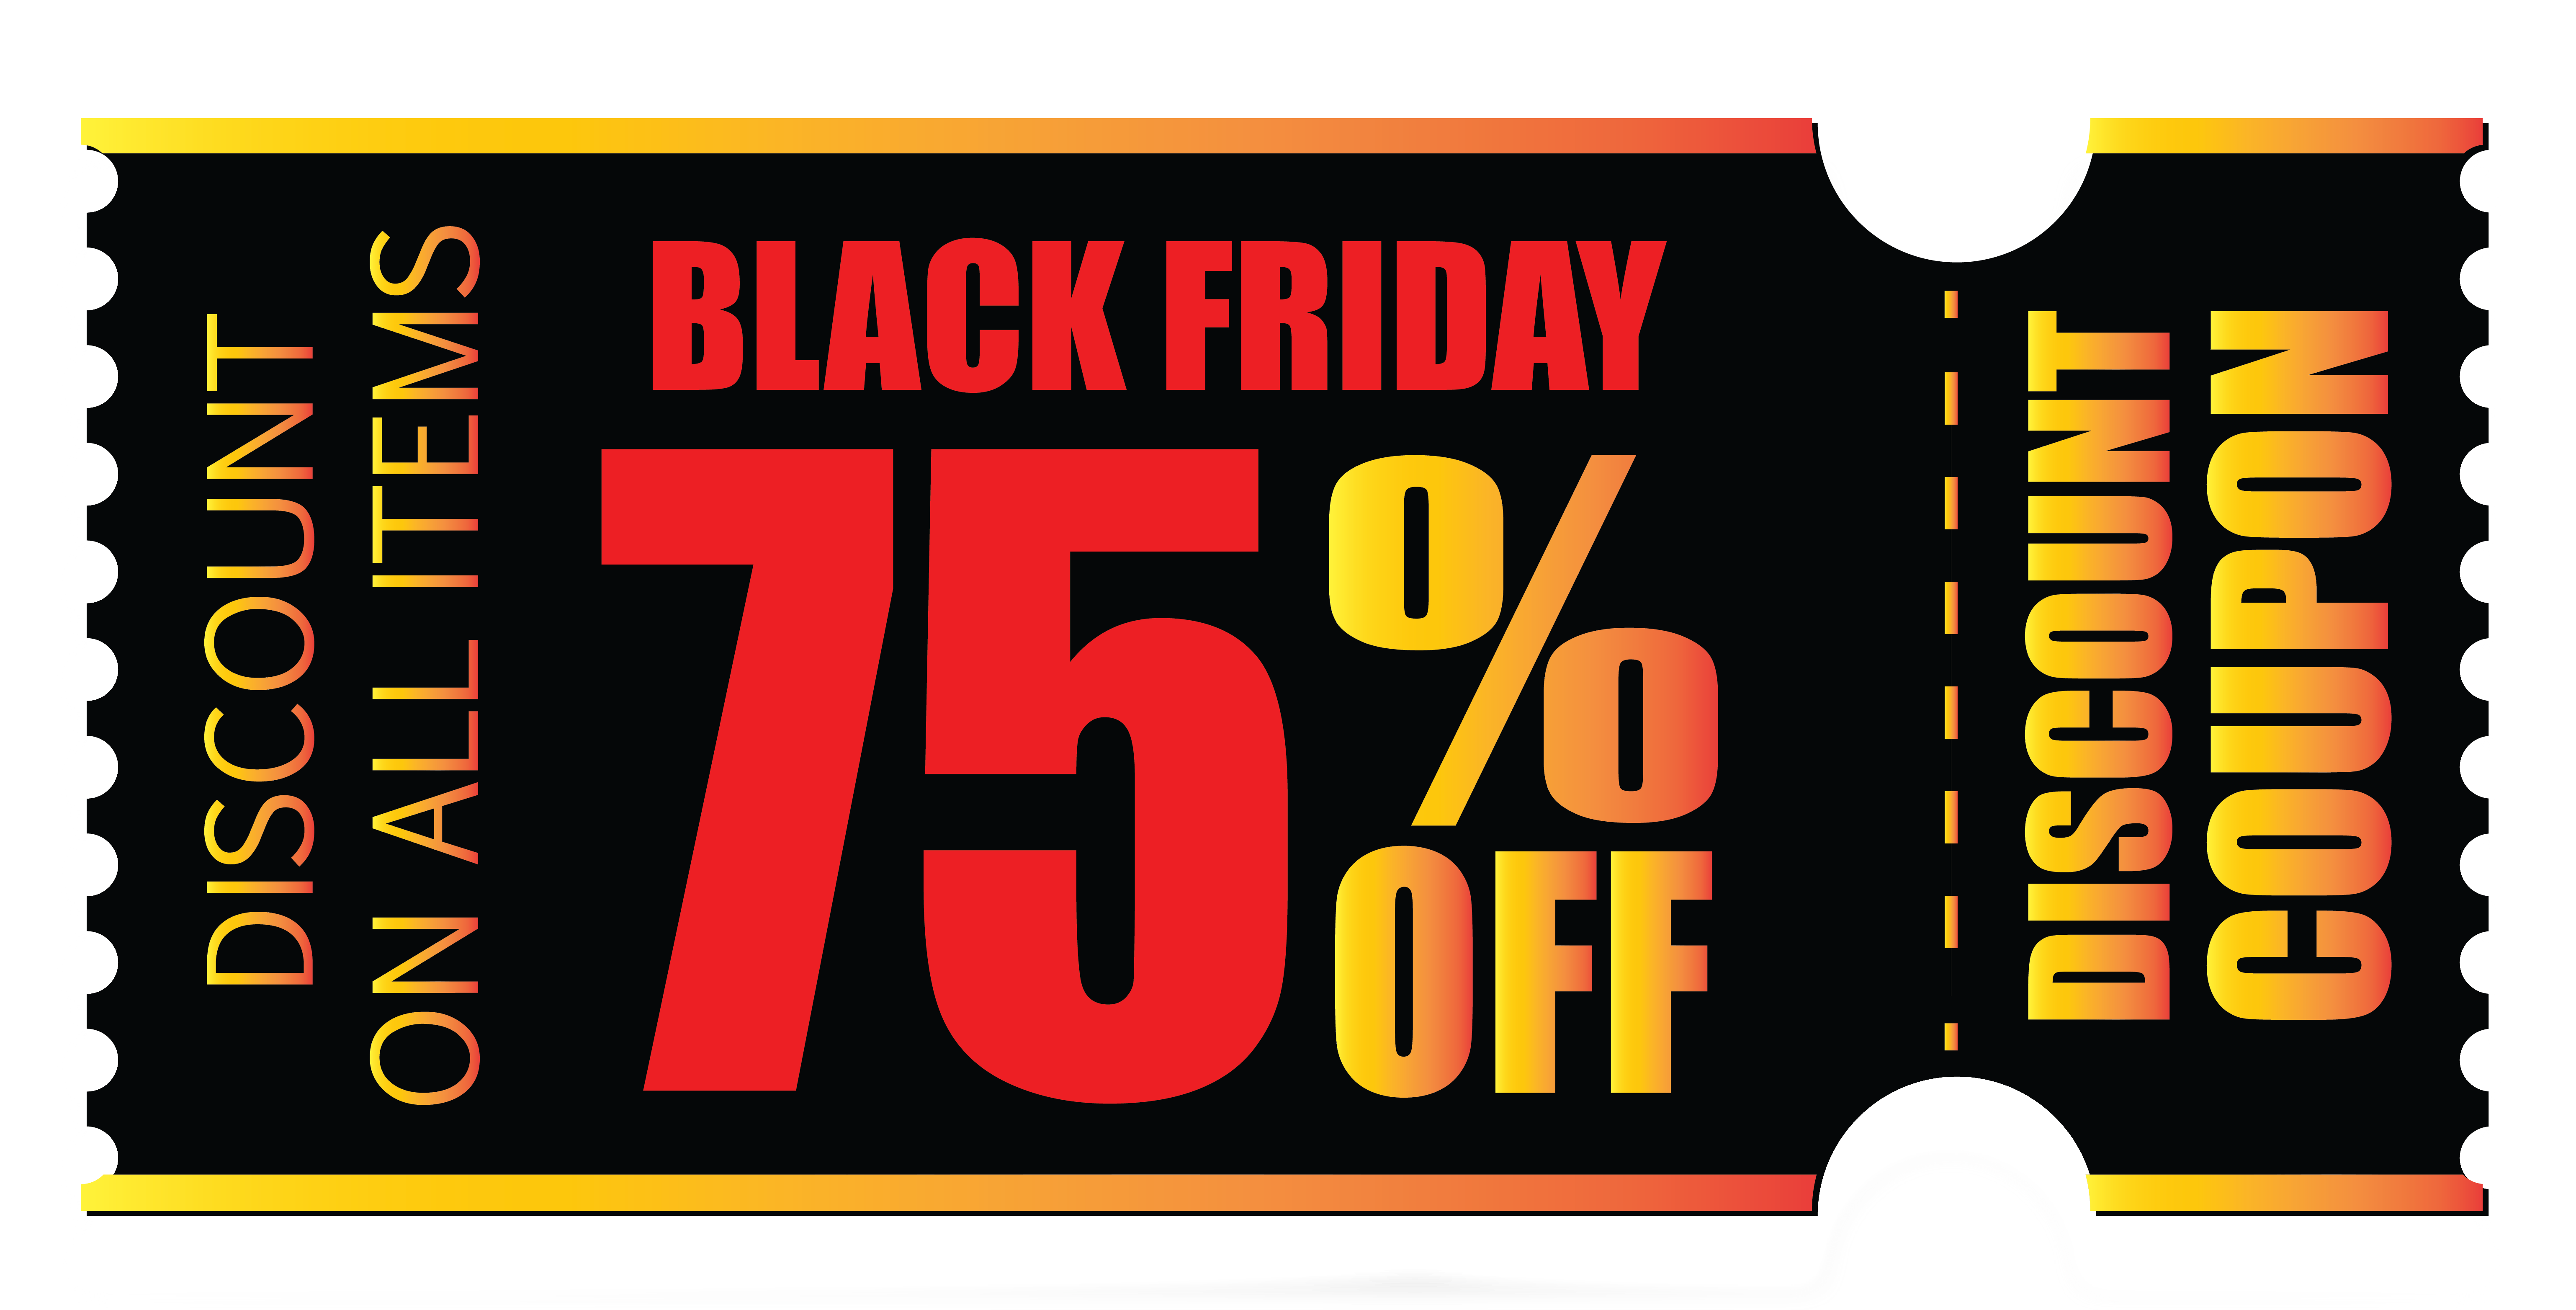 banner free download Black friday png image. Coupon clipart.